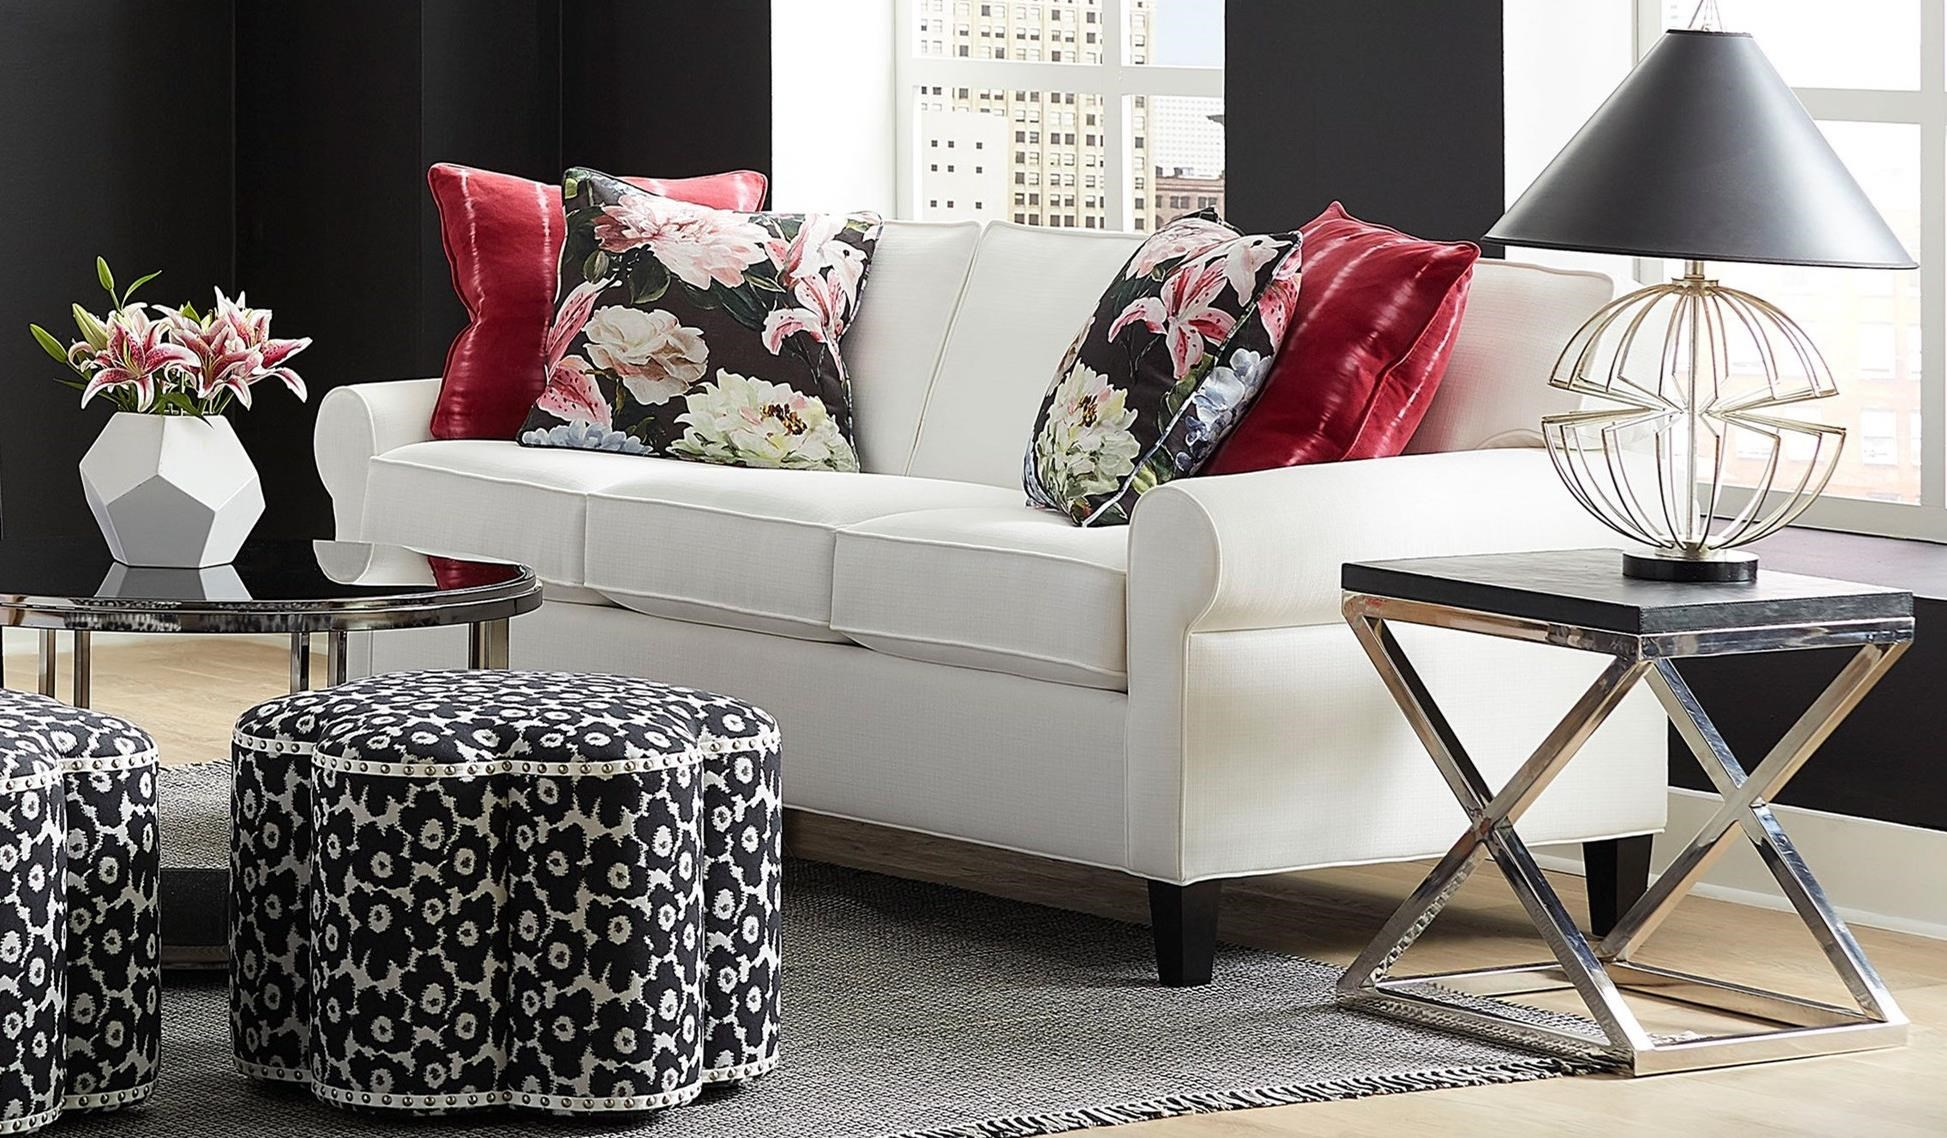 Copley Square Loose Back Stationary Sofa by Norwalk at Lagniappe Home Store